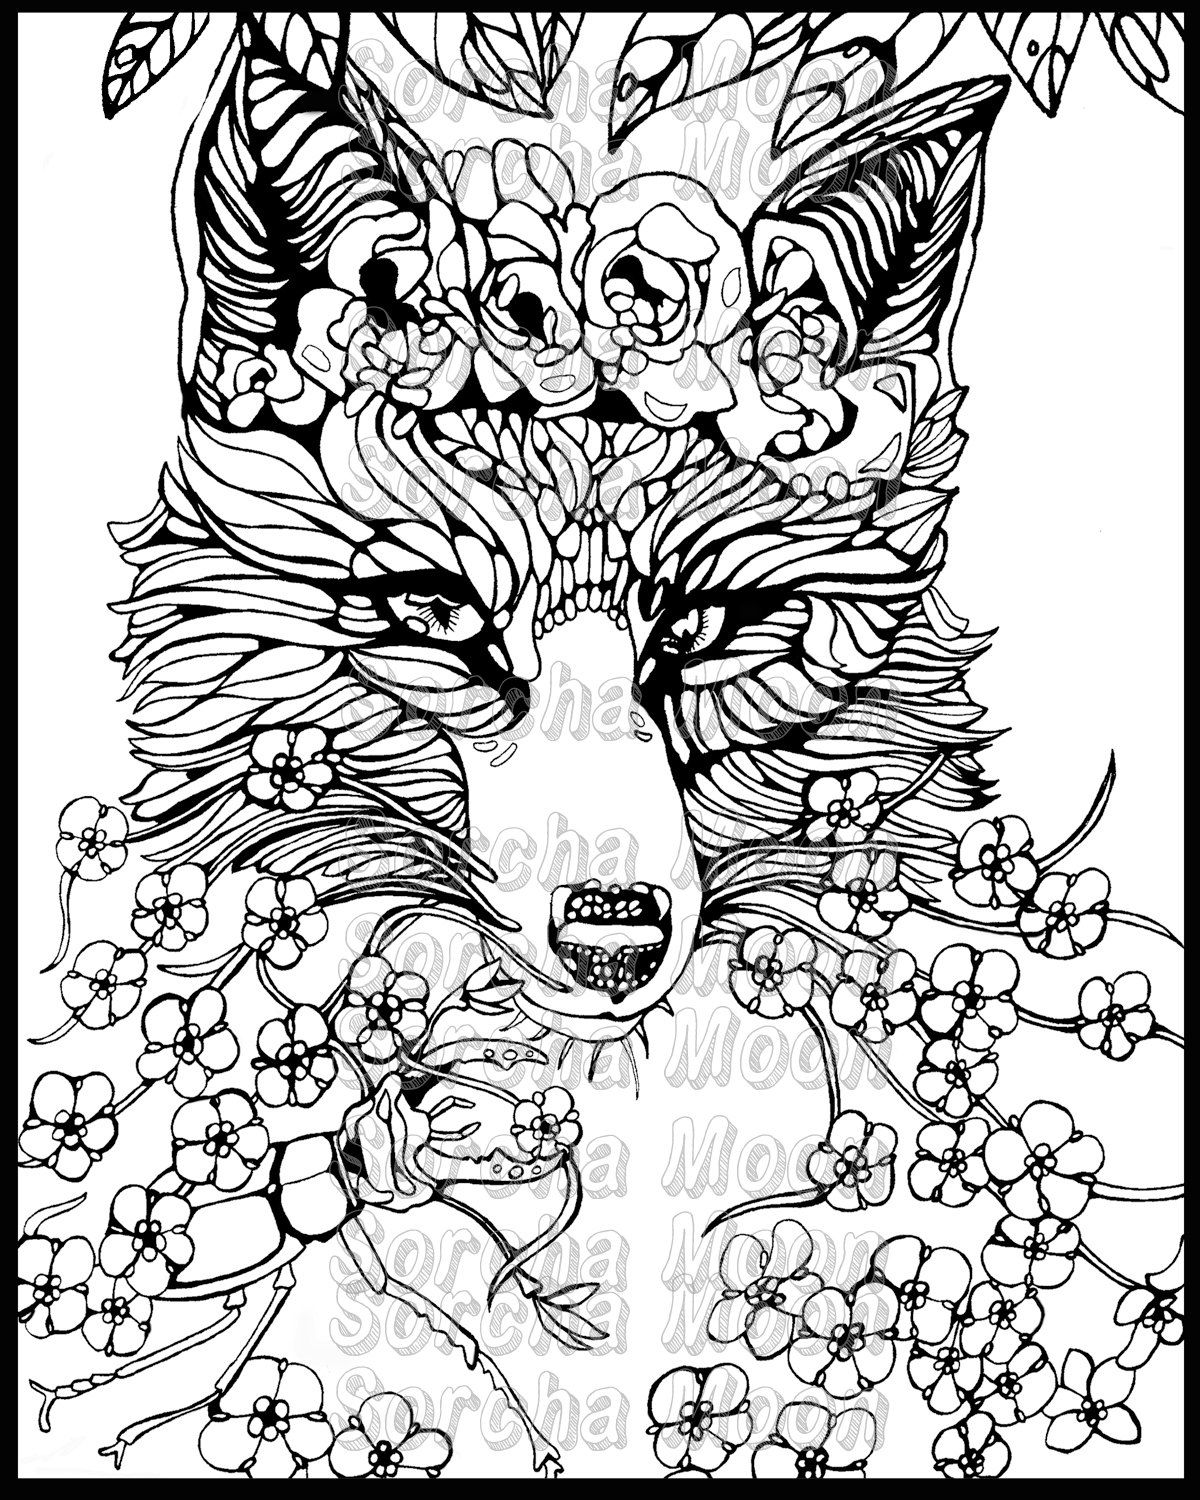 Fox Forget Me Nots Coloring Page for Adults | Forget, Foxes and Etsy